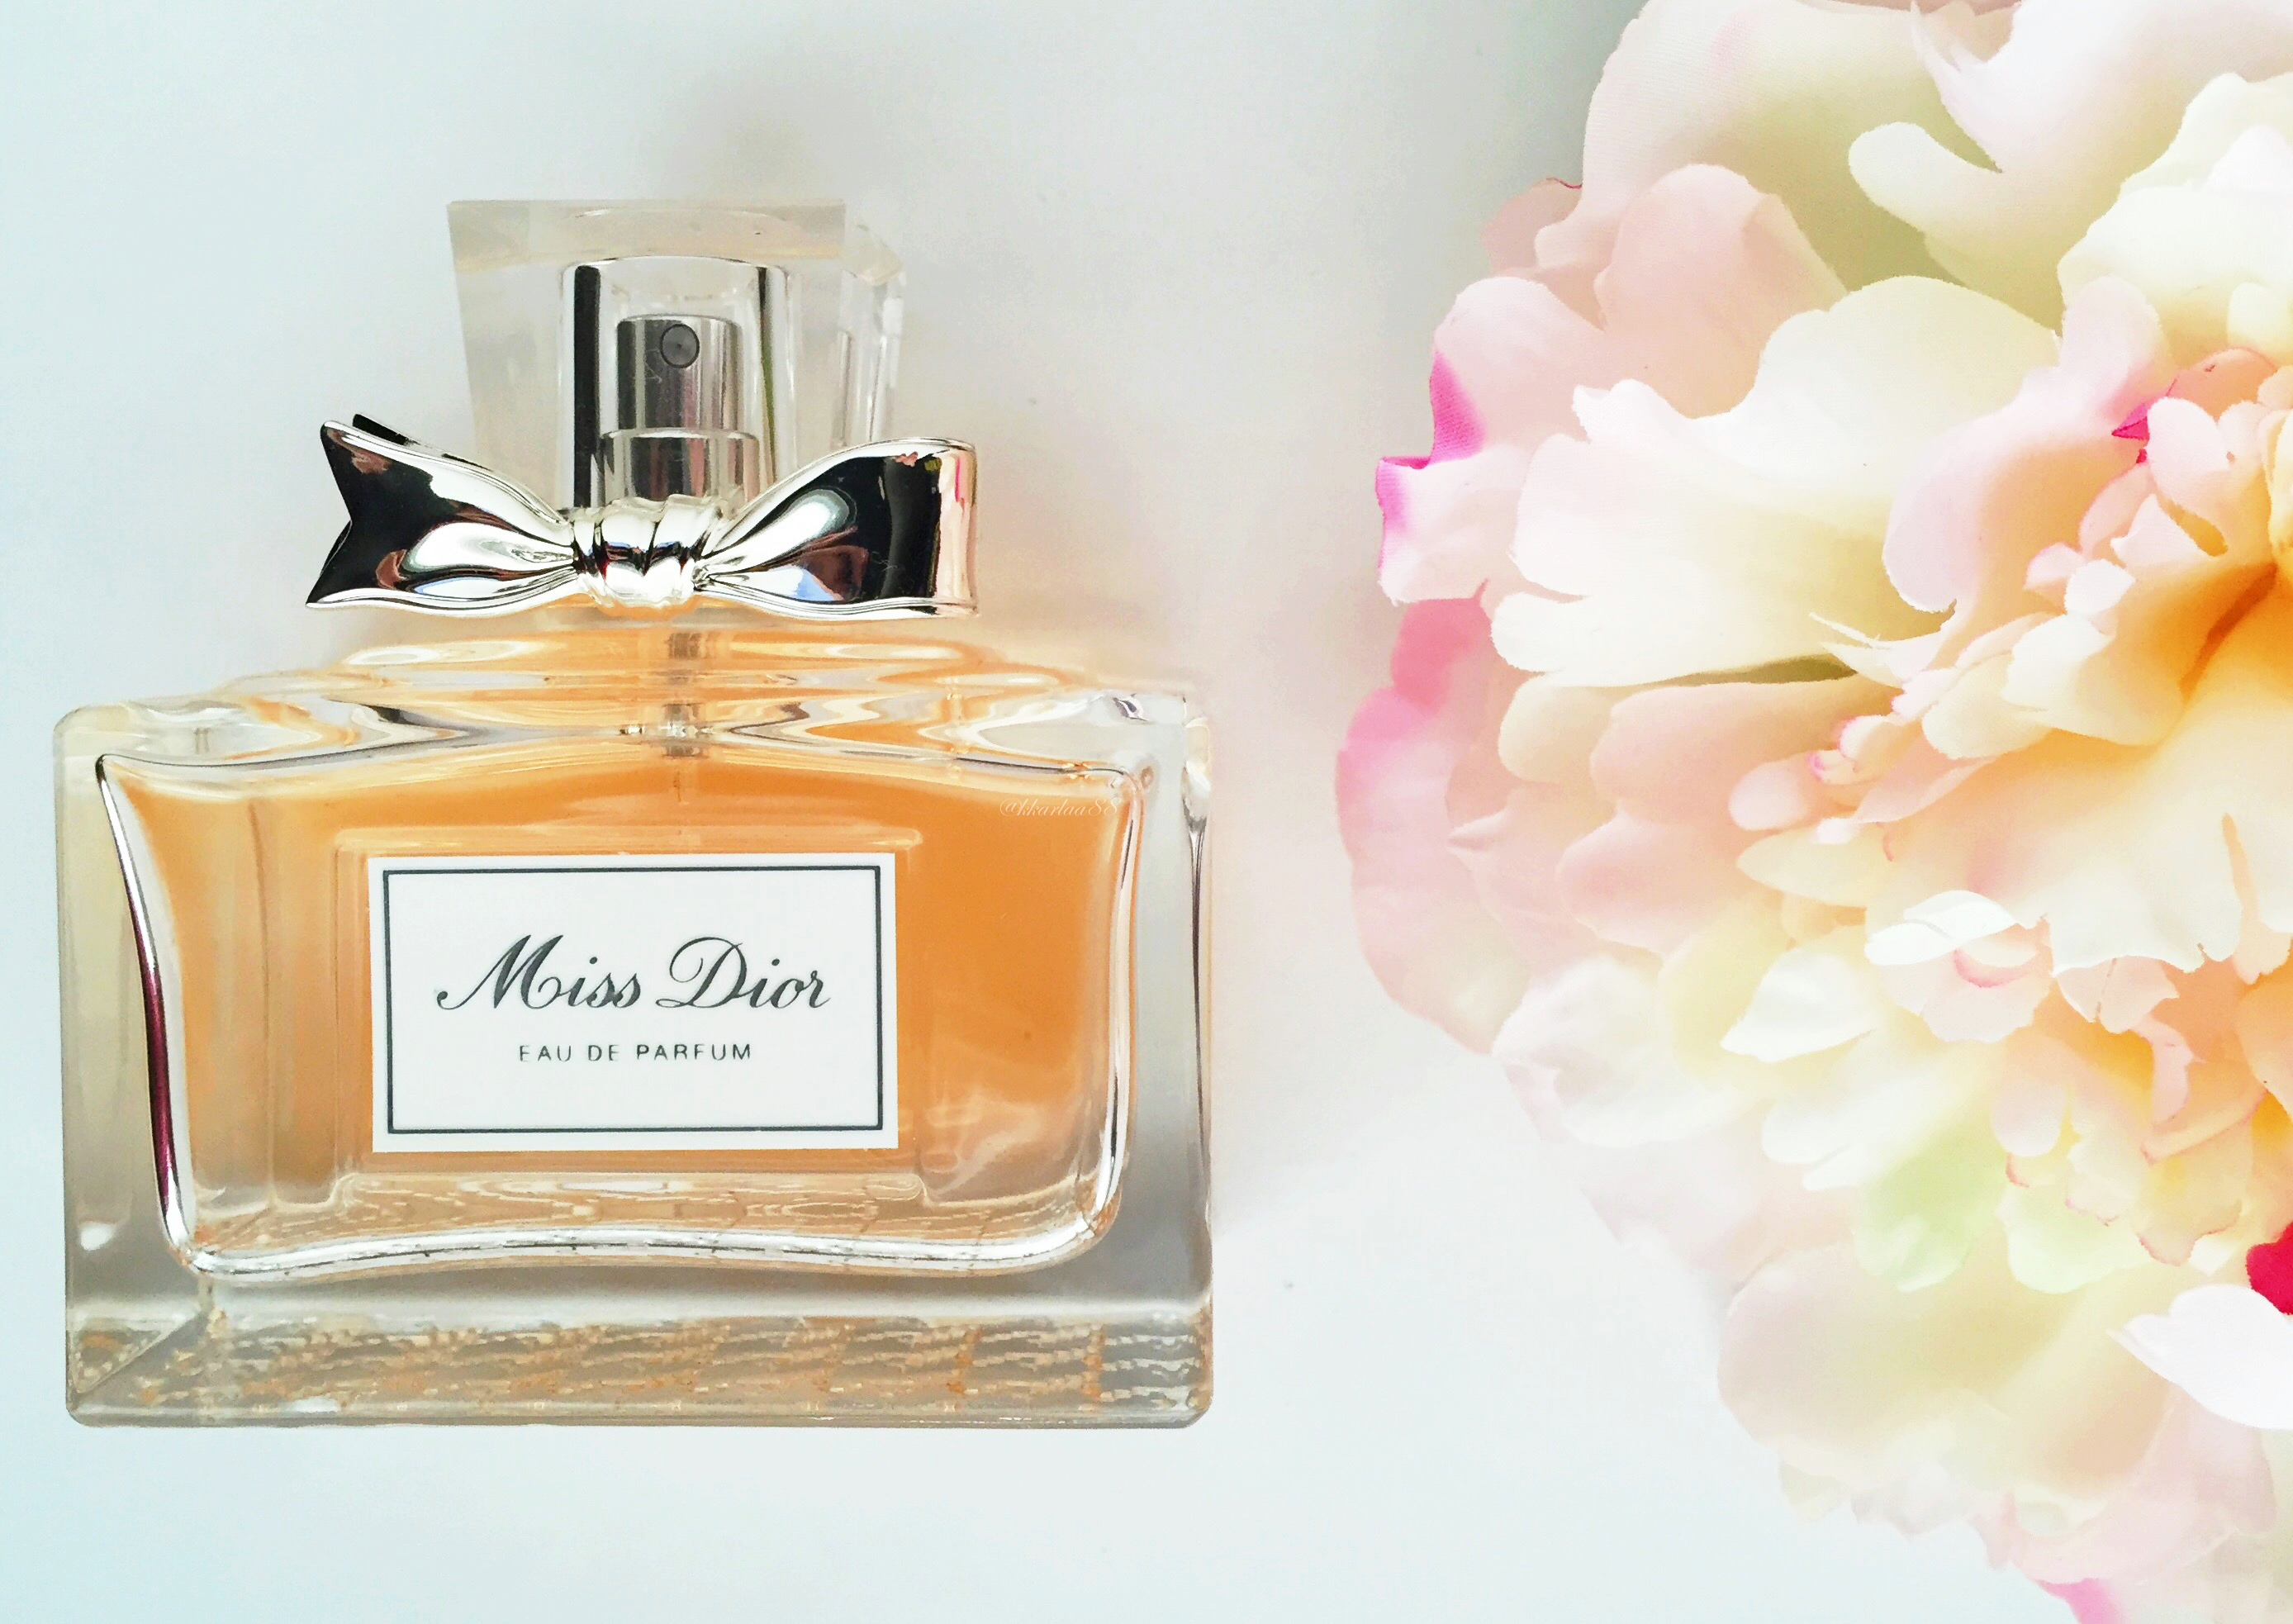 miss dior eau de parfum makeup flowers. Black Bedroom Furniture Sets. Home Design Ideas